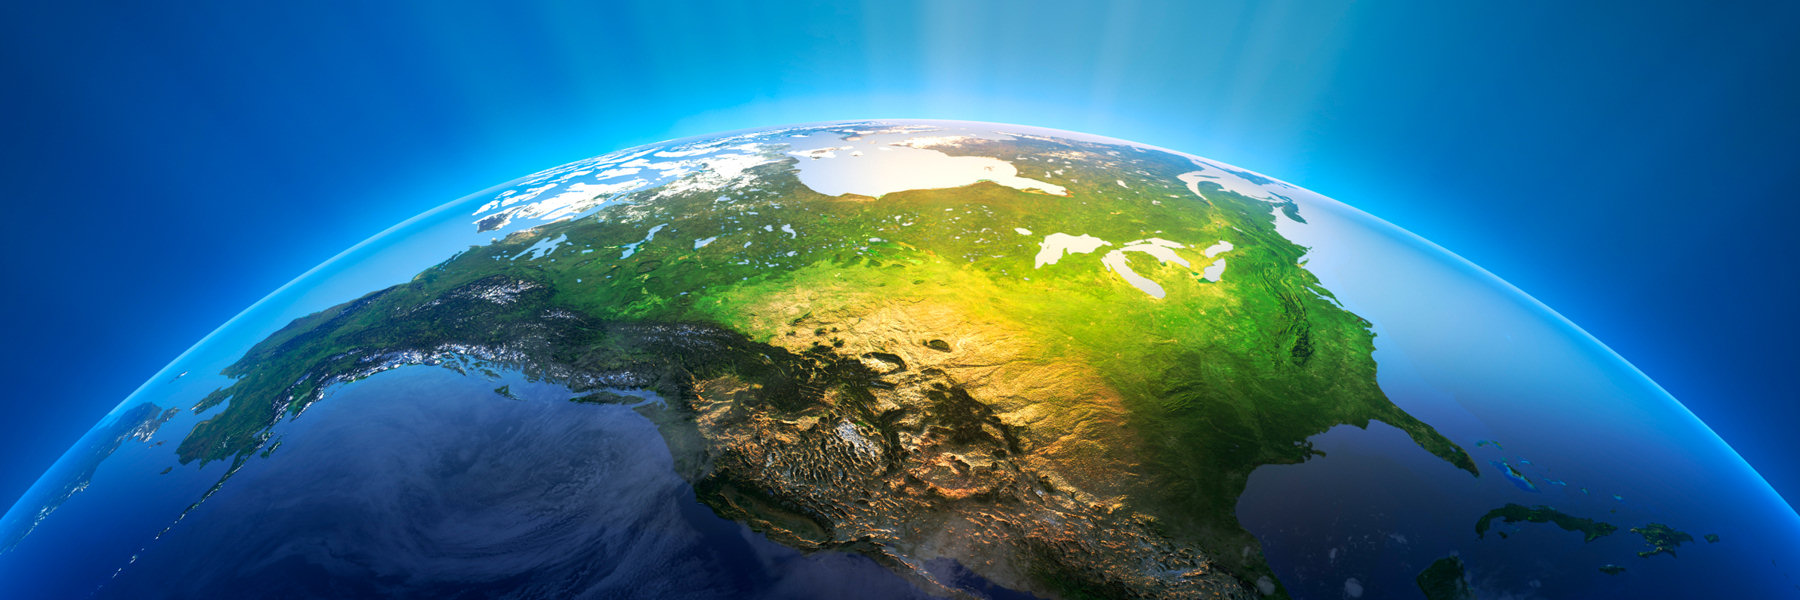 Banner Image - 3D relief of North America from space